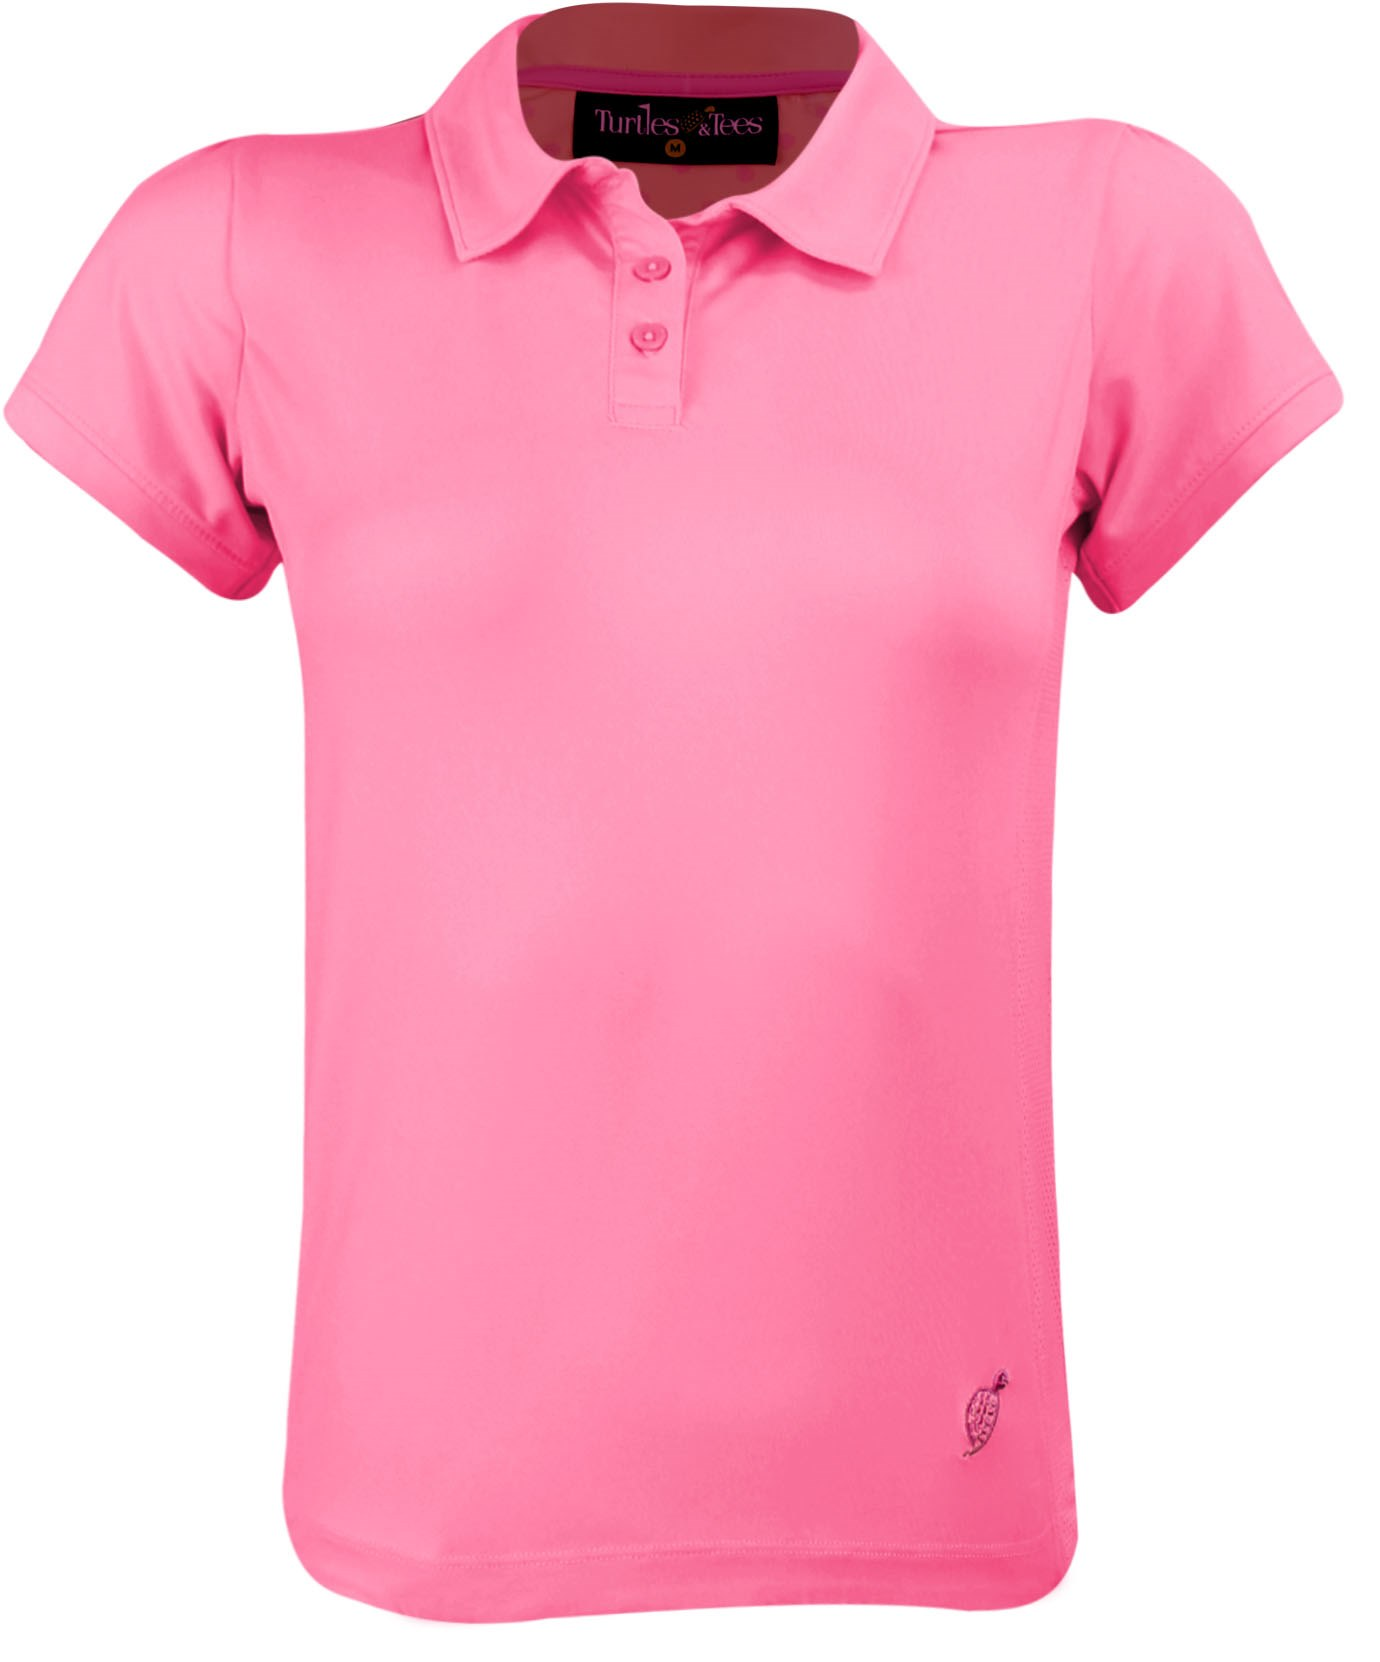 Girl's Cap Sleeve Polo Shirt Pink/Hot Dotty